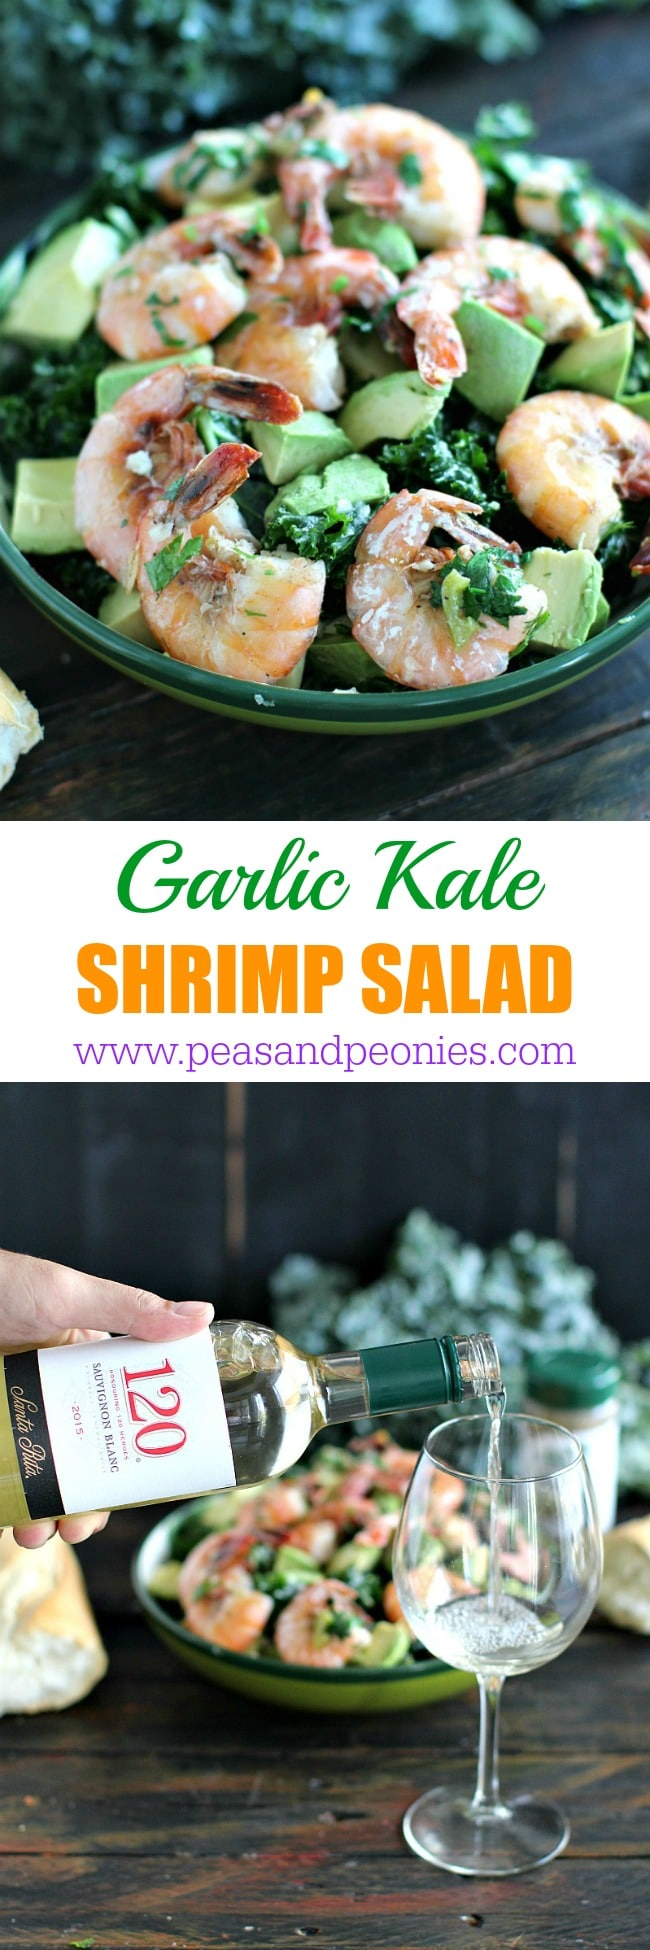 Garlic kale salad topped with garlicky shrimp cooked in sauvignon blanc and served with buttery avocado is the perfect summer meal.